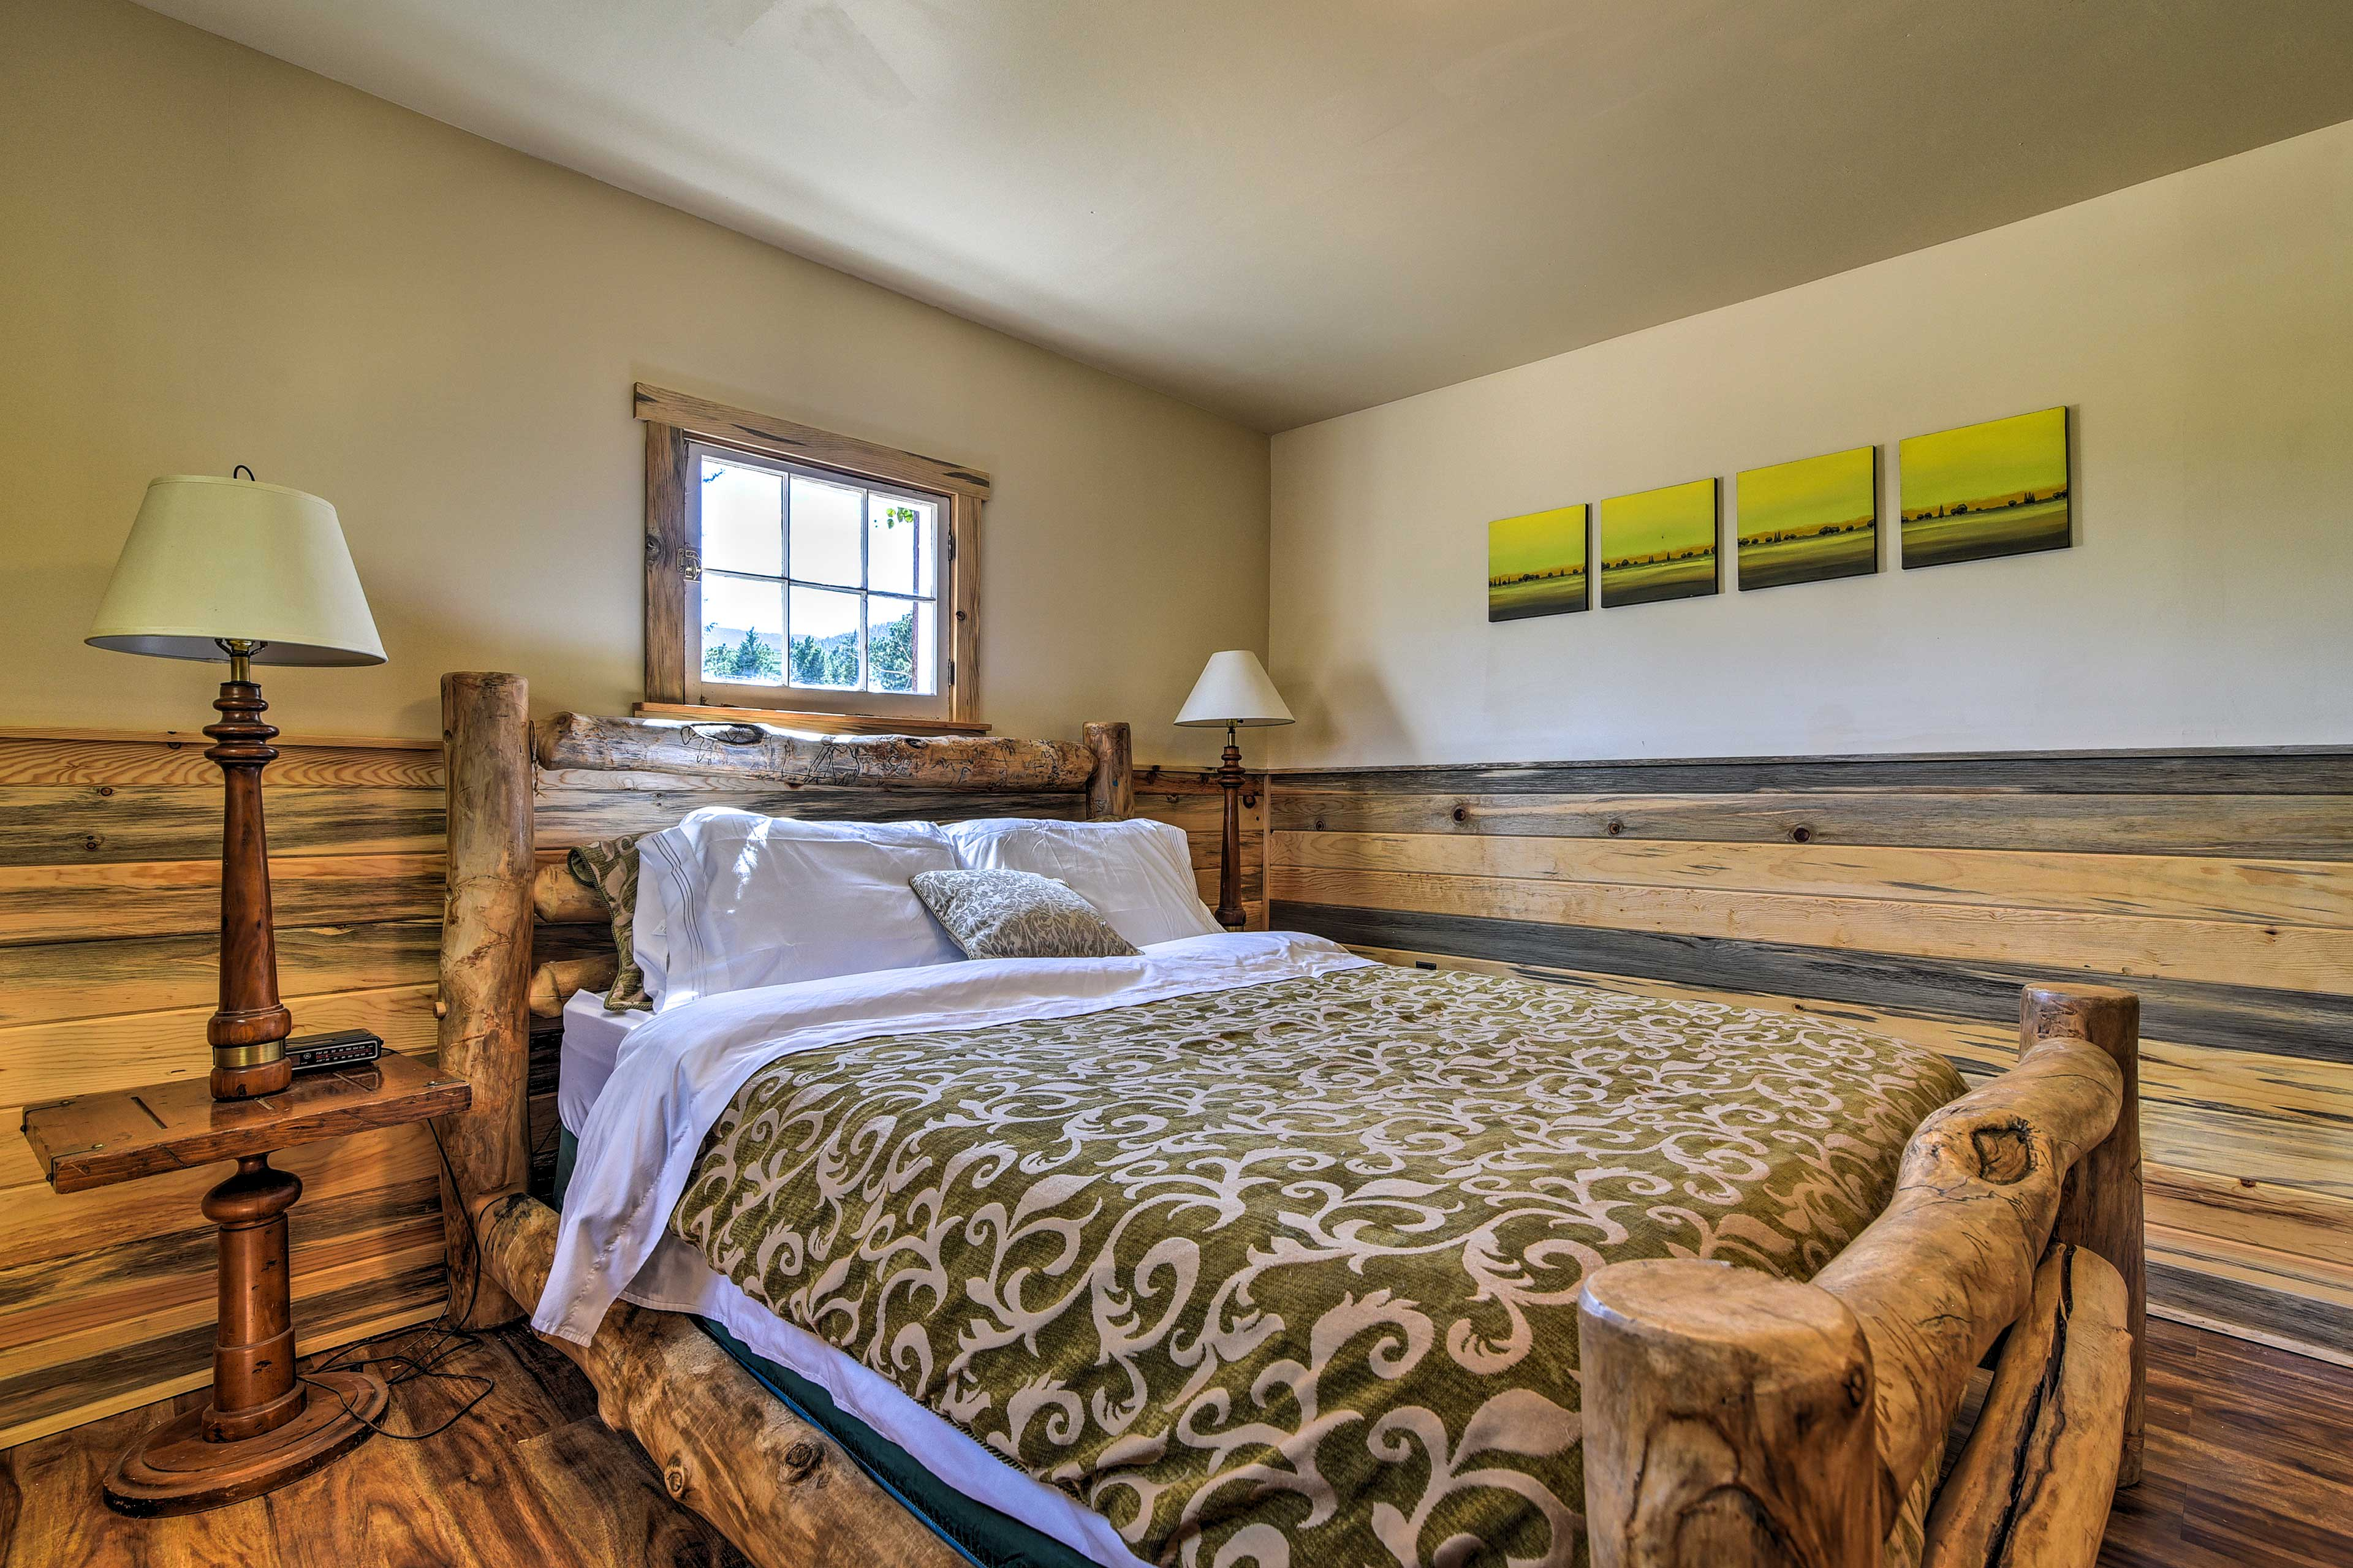 The log bed frame is one-of-a-kind!